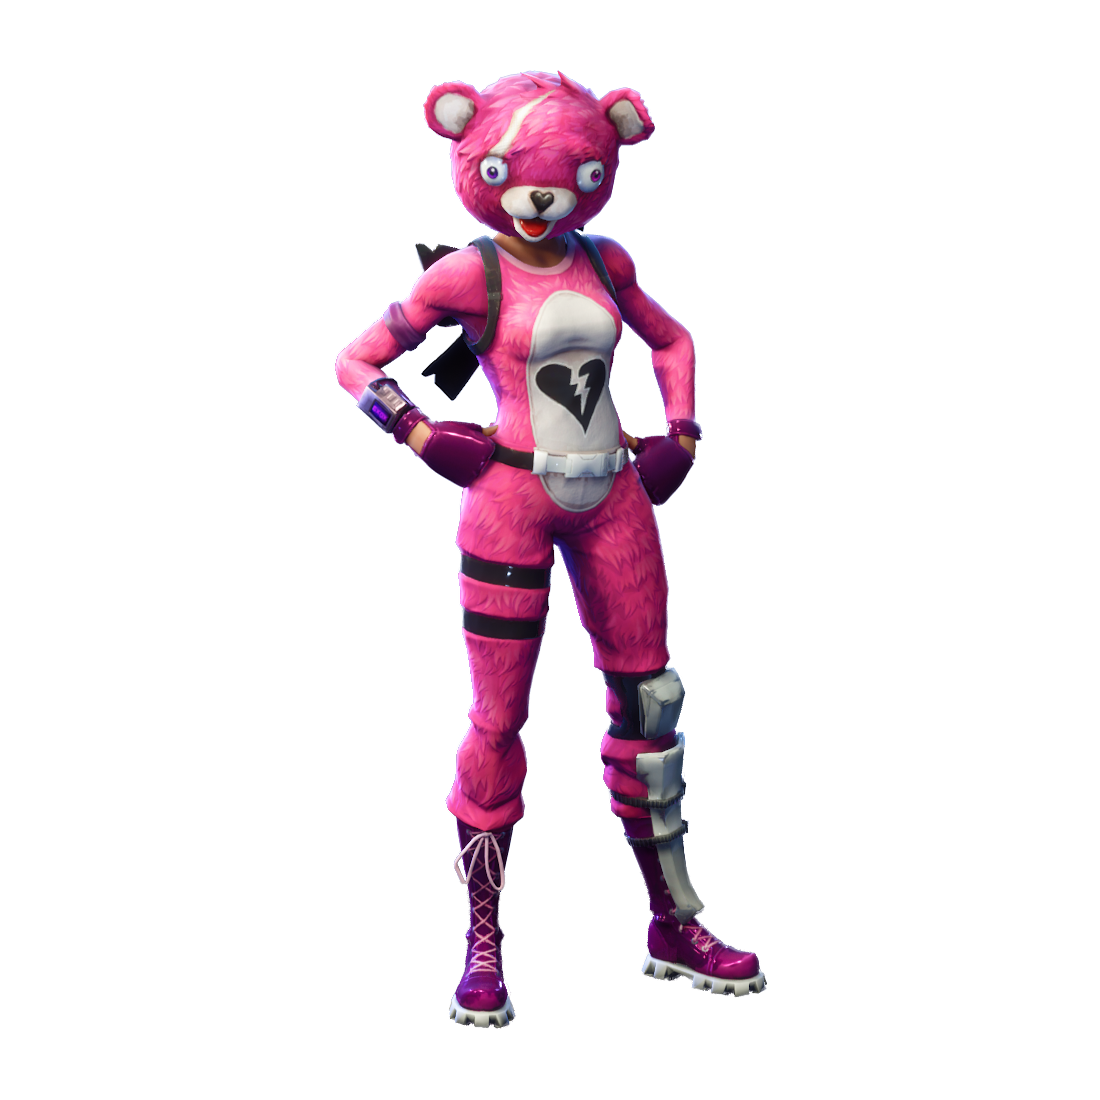 Bear Wall Stickers Fnbr Co Fortnite Cosmetics